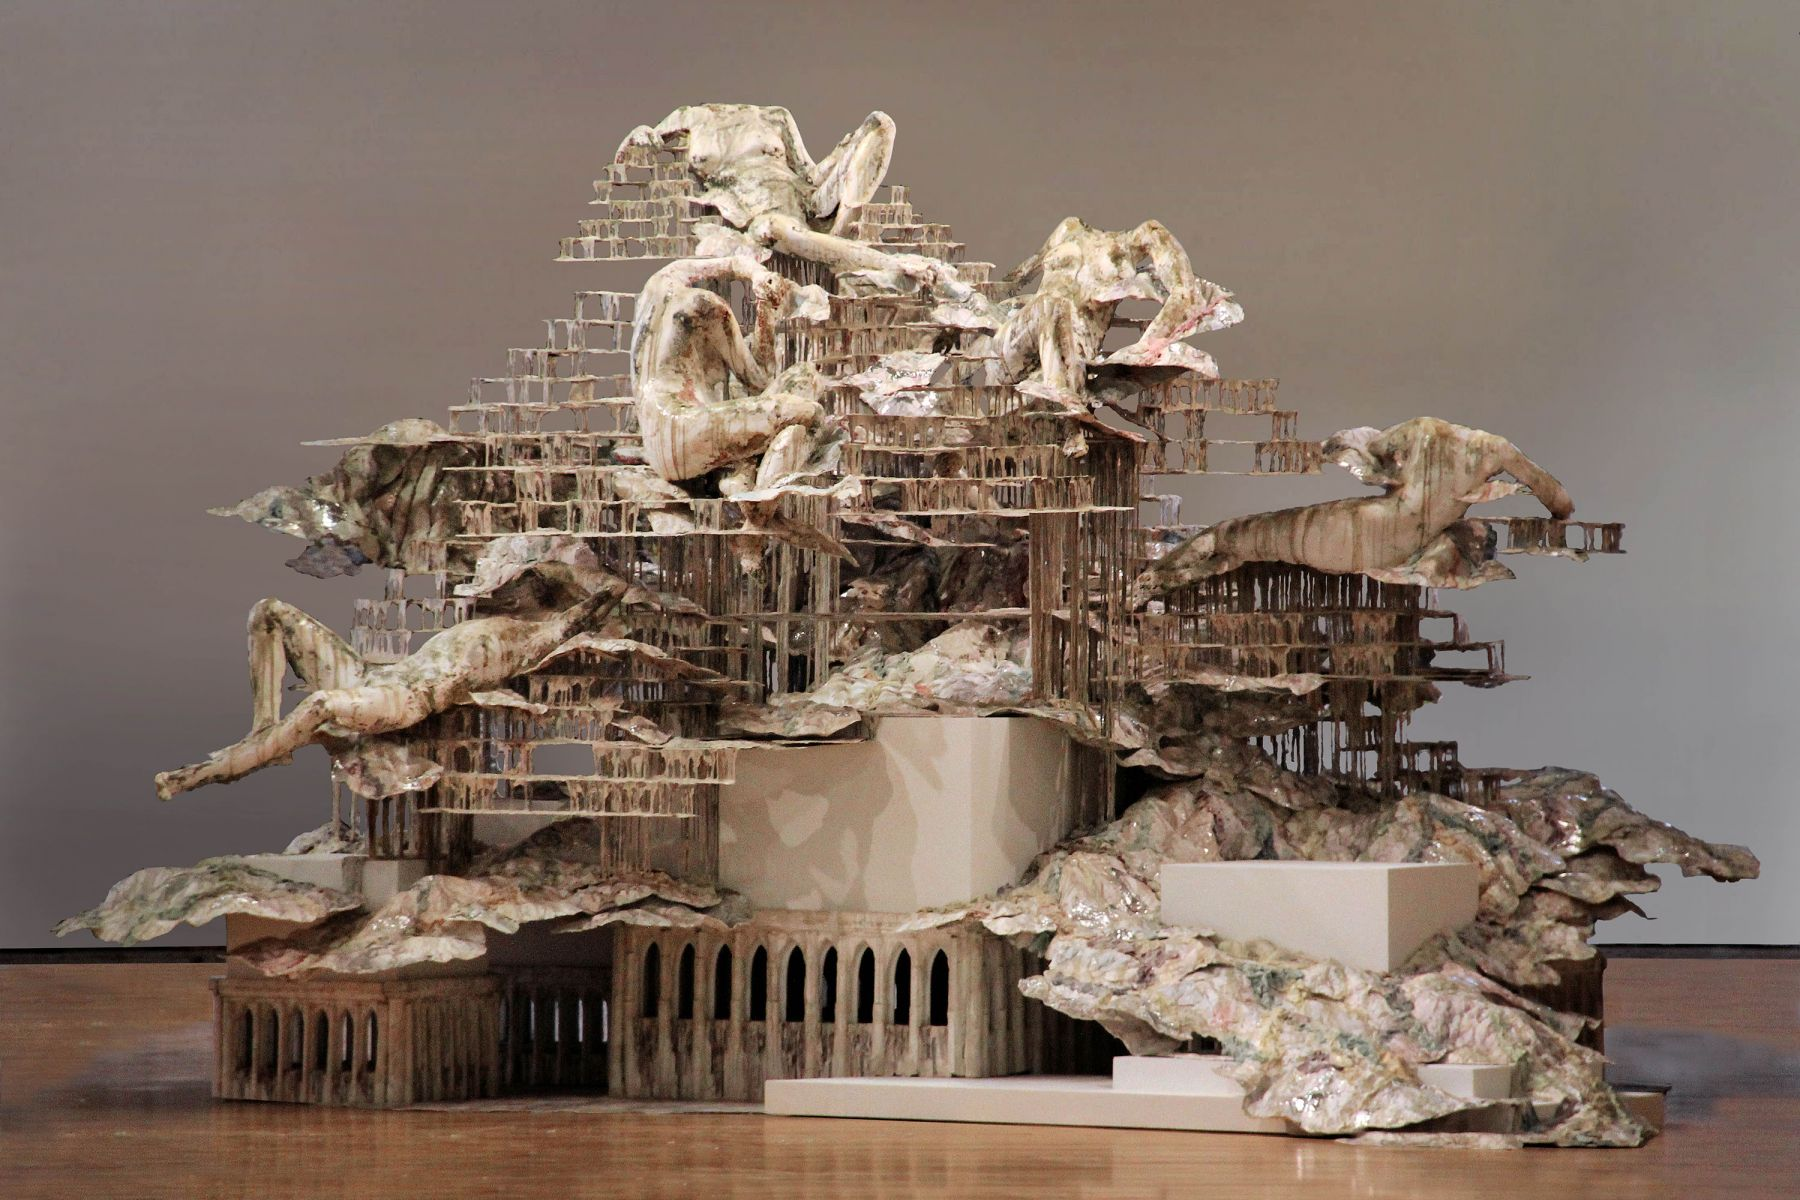 A large dripping sculpture by the Syrian artist Diana Al-Hadid